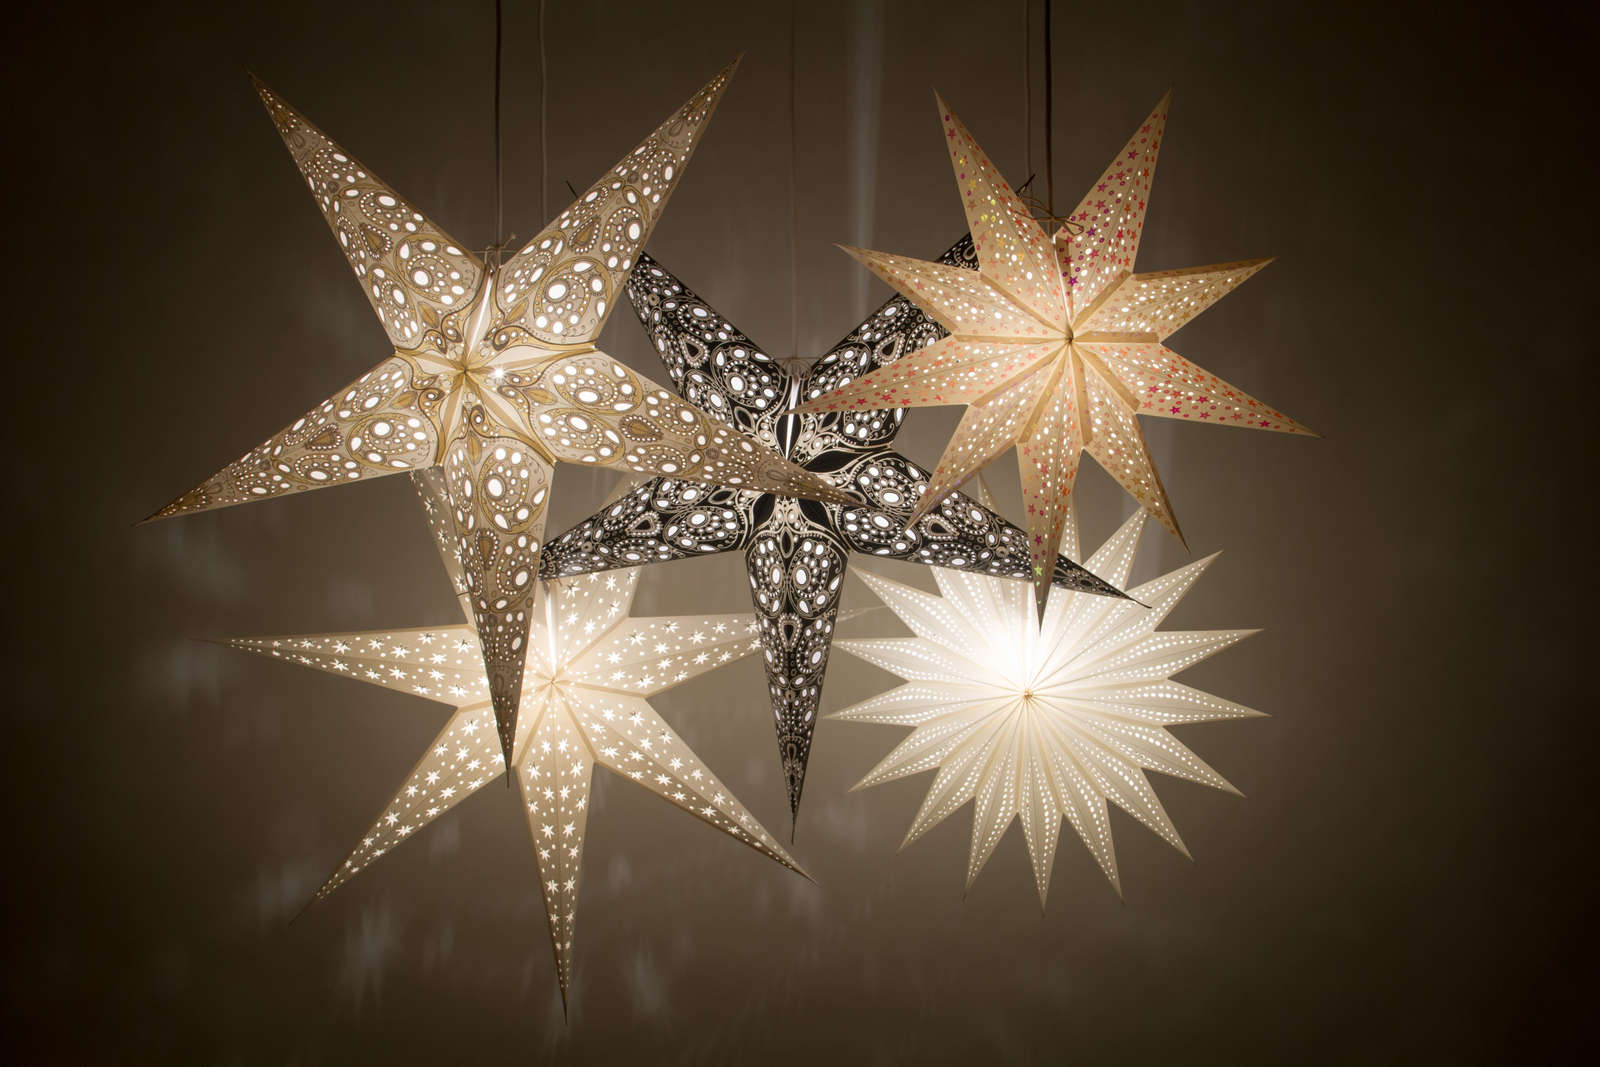 Deluxe Lanterns Decorative Paper Star Lanterns & Light Shades